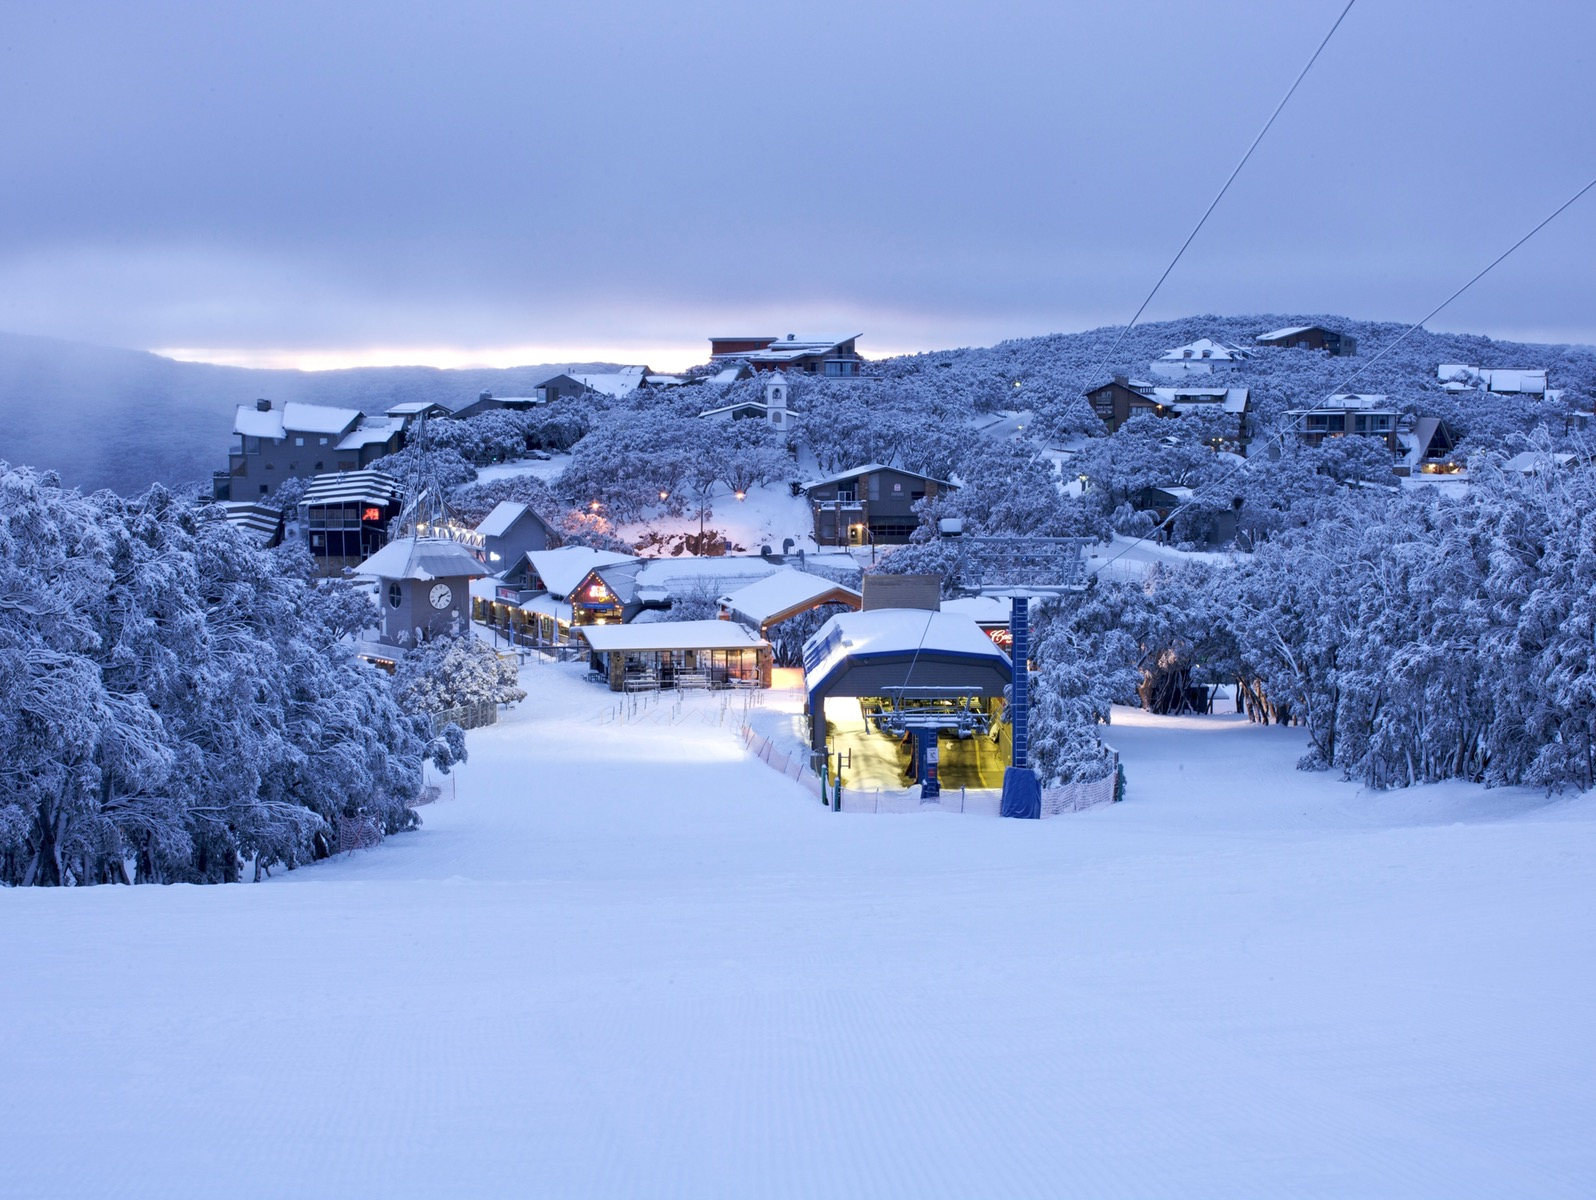 Mt Buller, Luxury Snow Tour, Melbourne Australia